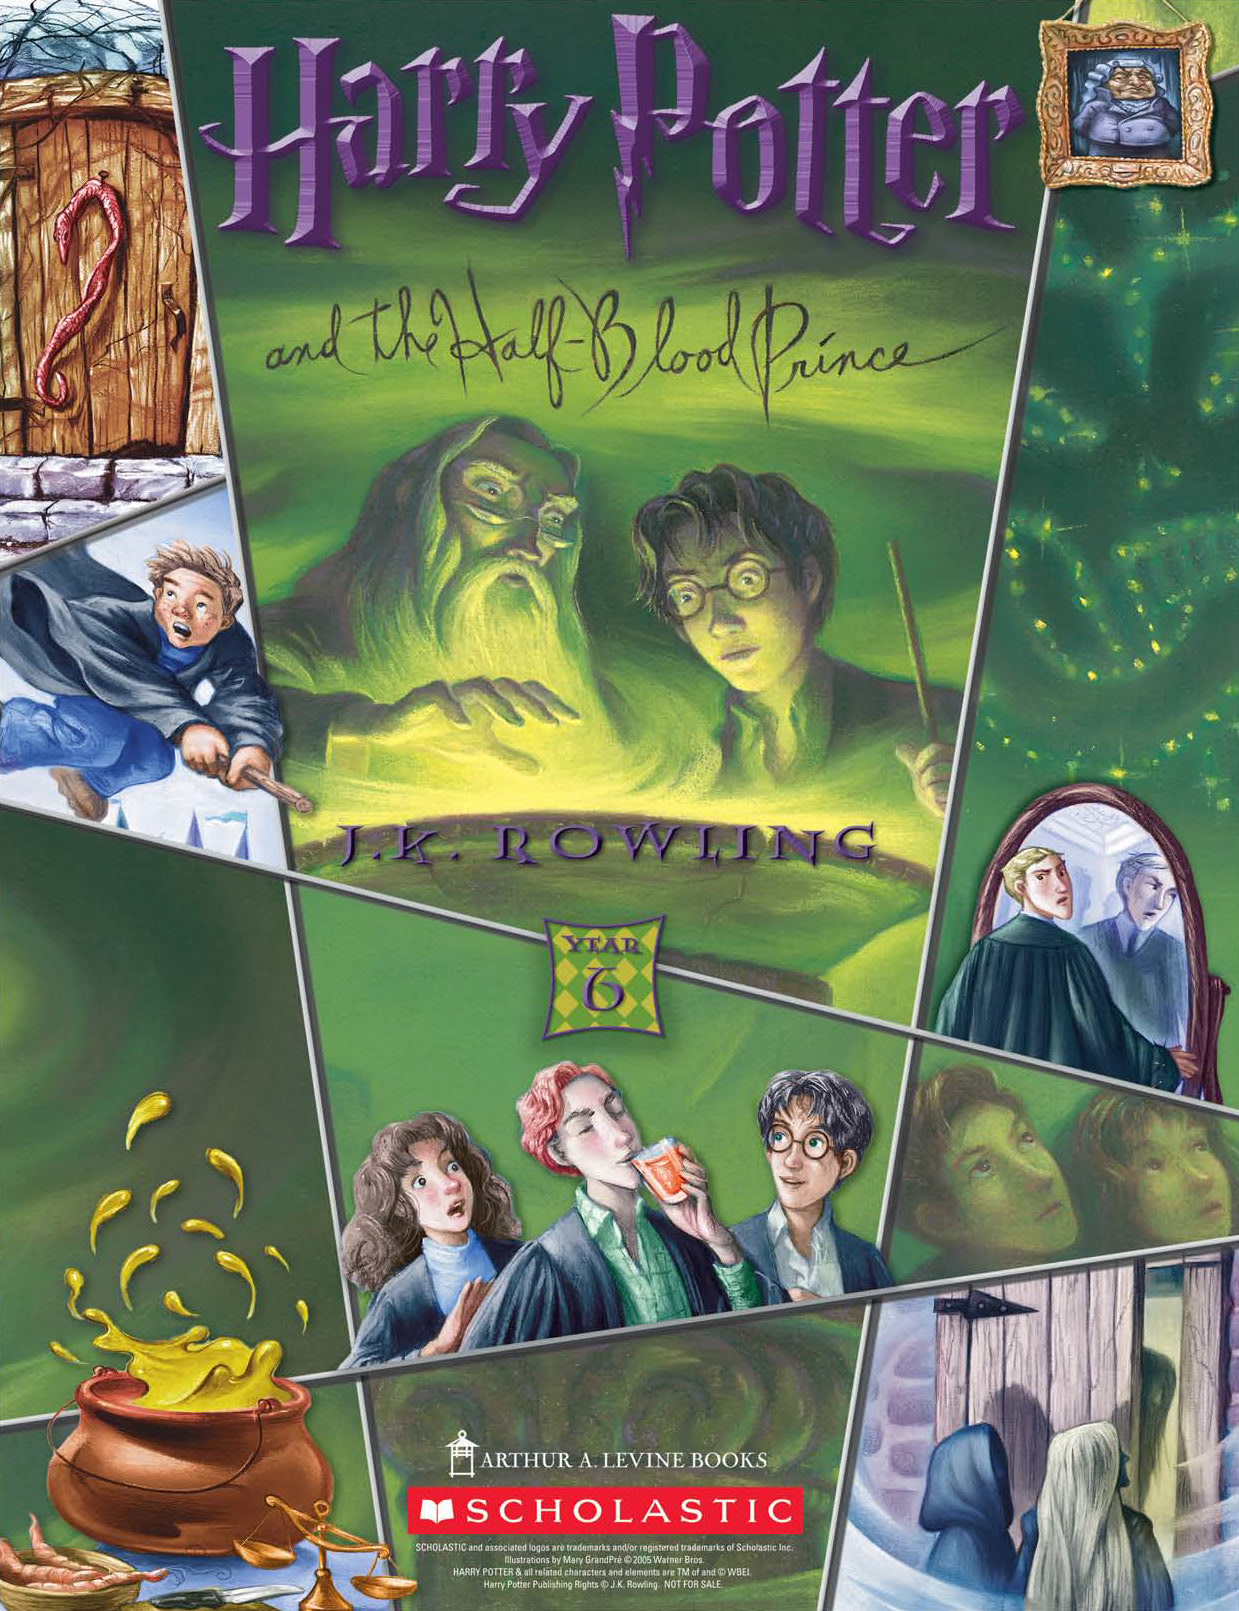 'Half-Blood Prince' (Year 6) Scholastic promotional poster